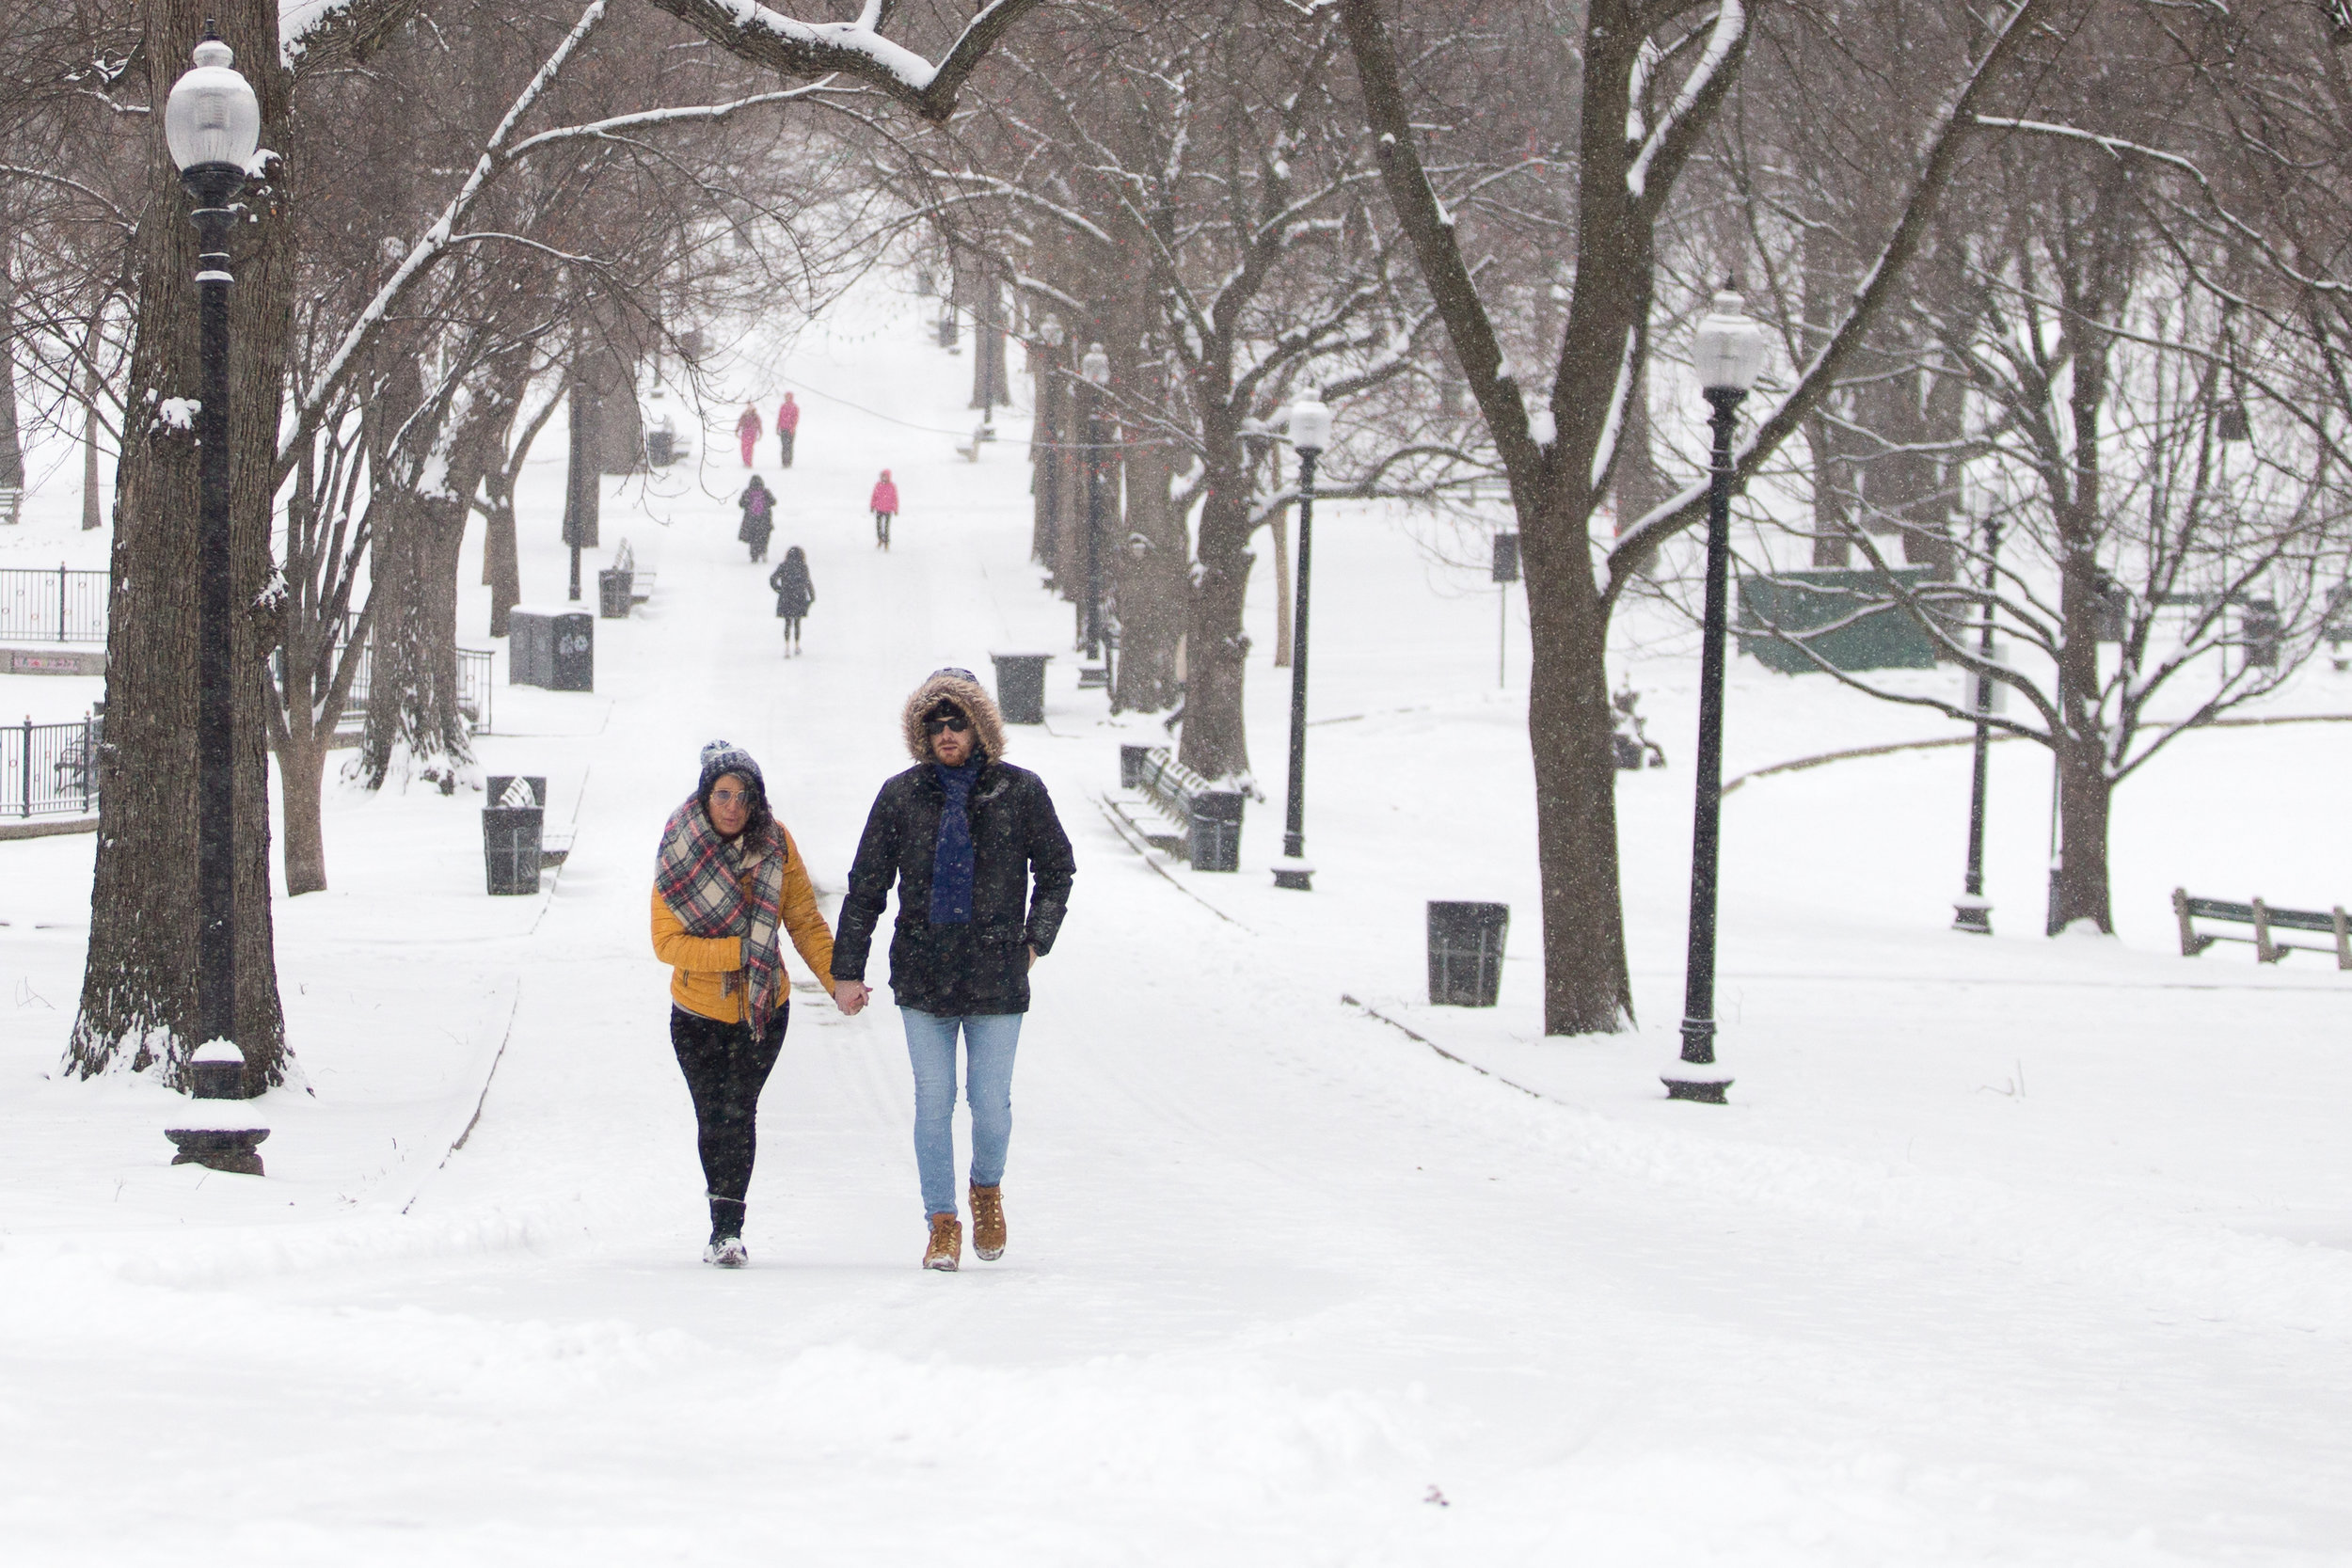 People brave cold and snowy weather to walk in the Boston Common Dec. 17, 2016.